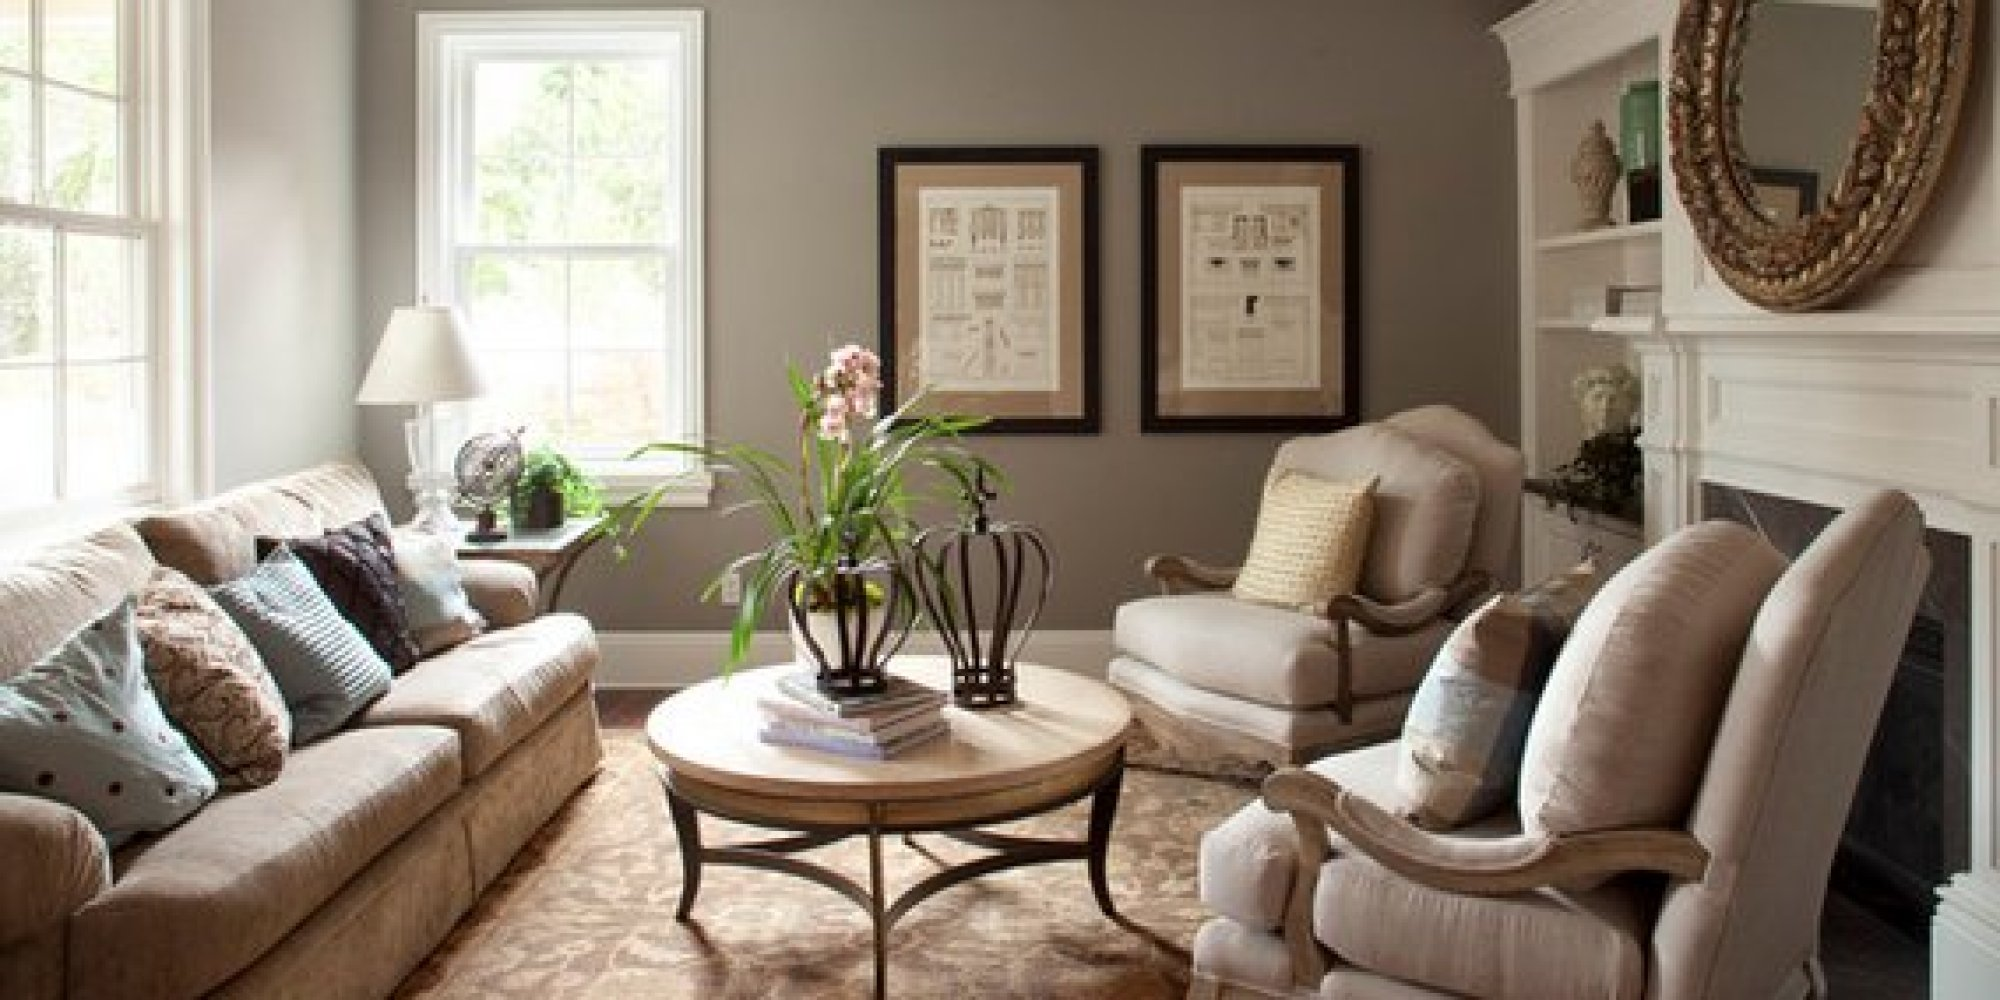 The 6 best paint colors that work in any home huffpost - Neutral colors to paint a living room ...